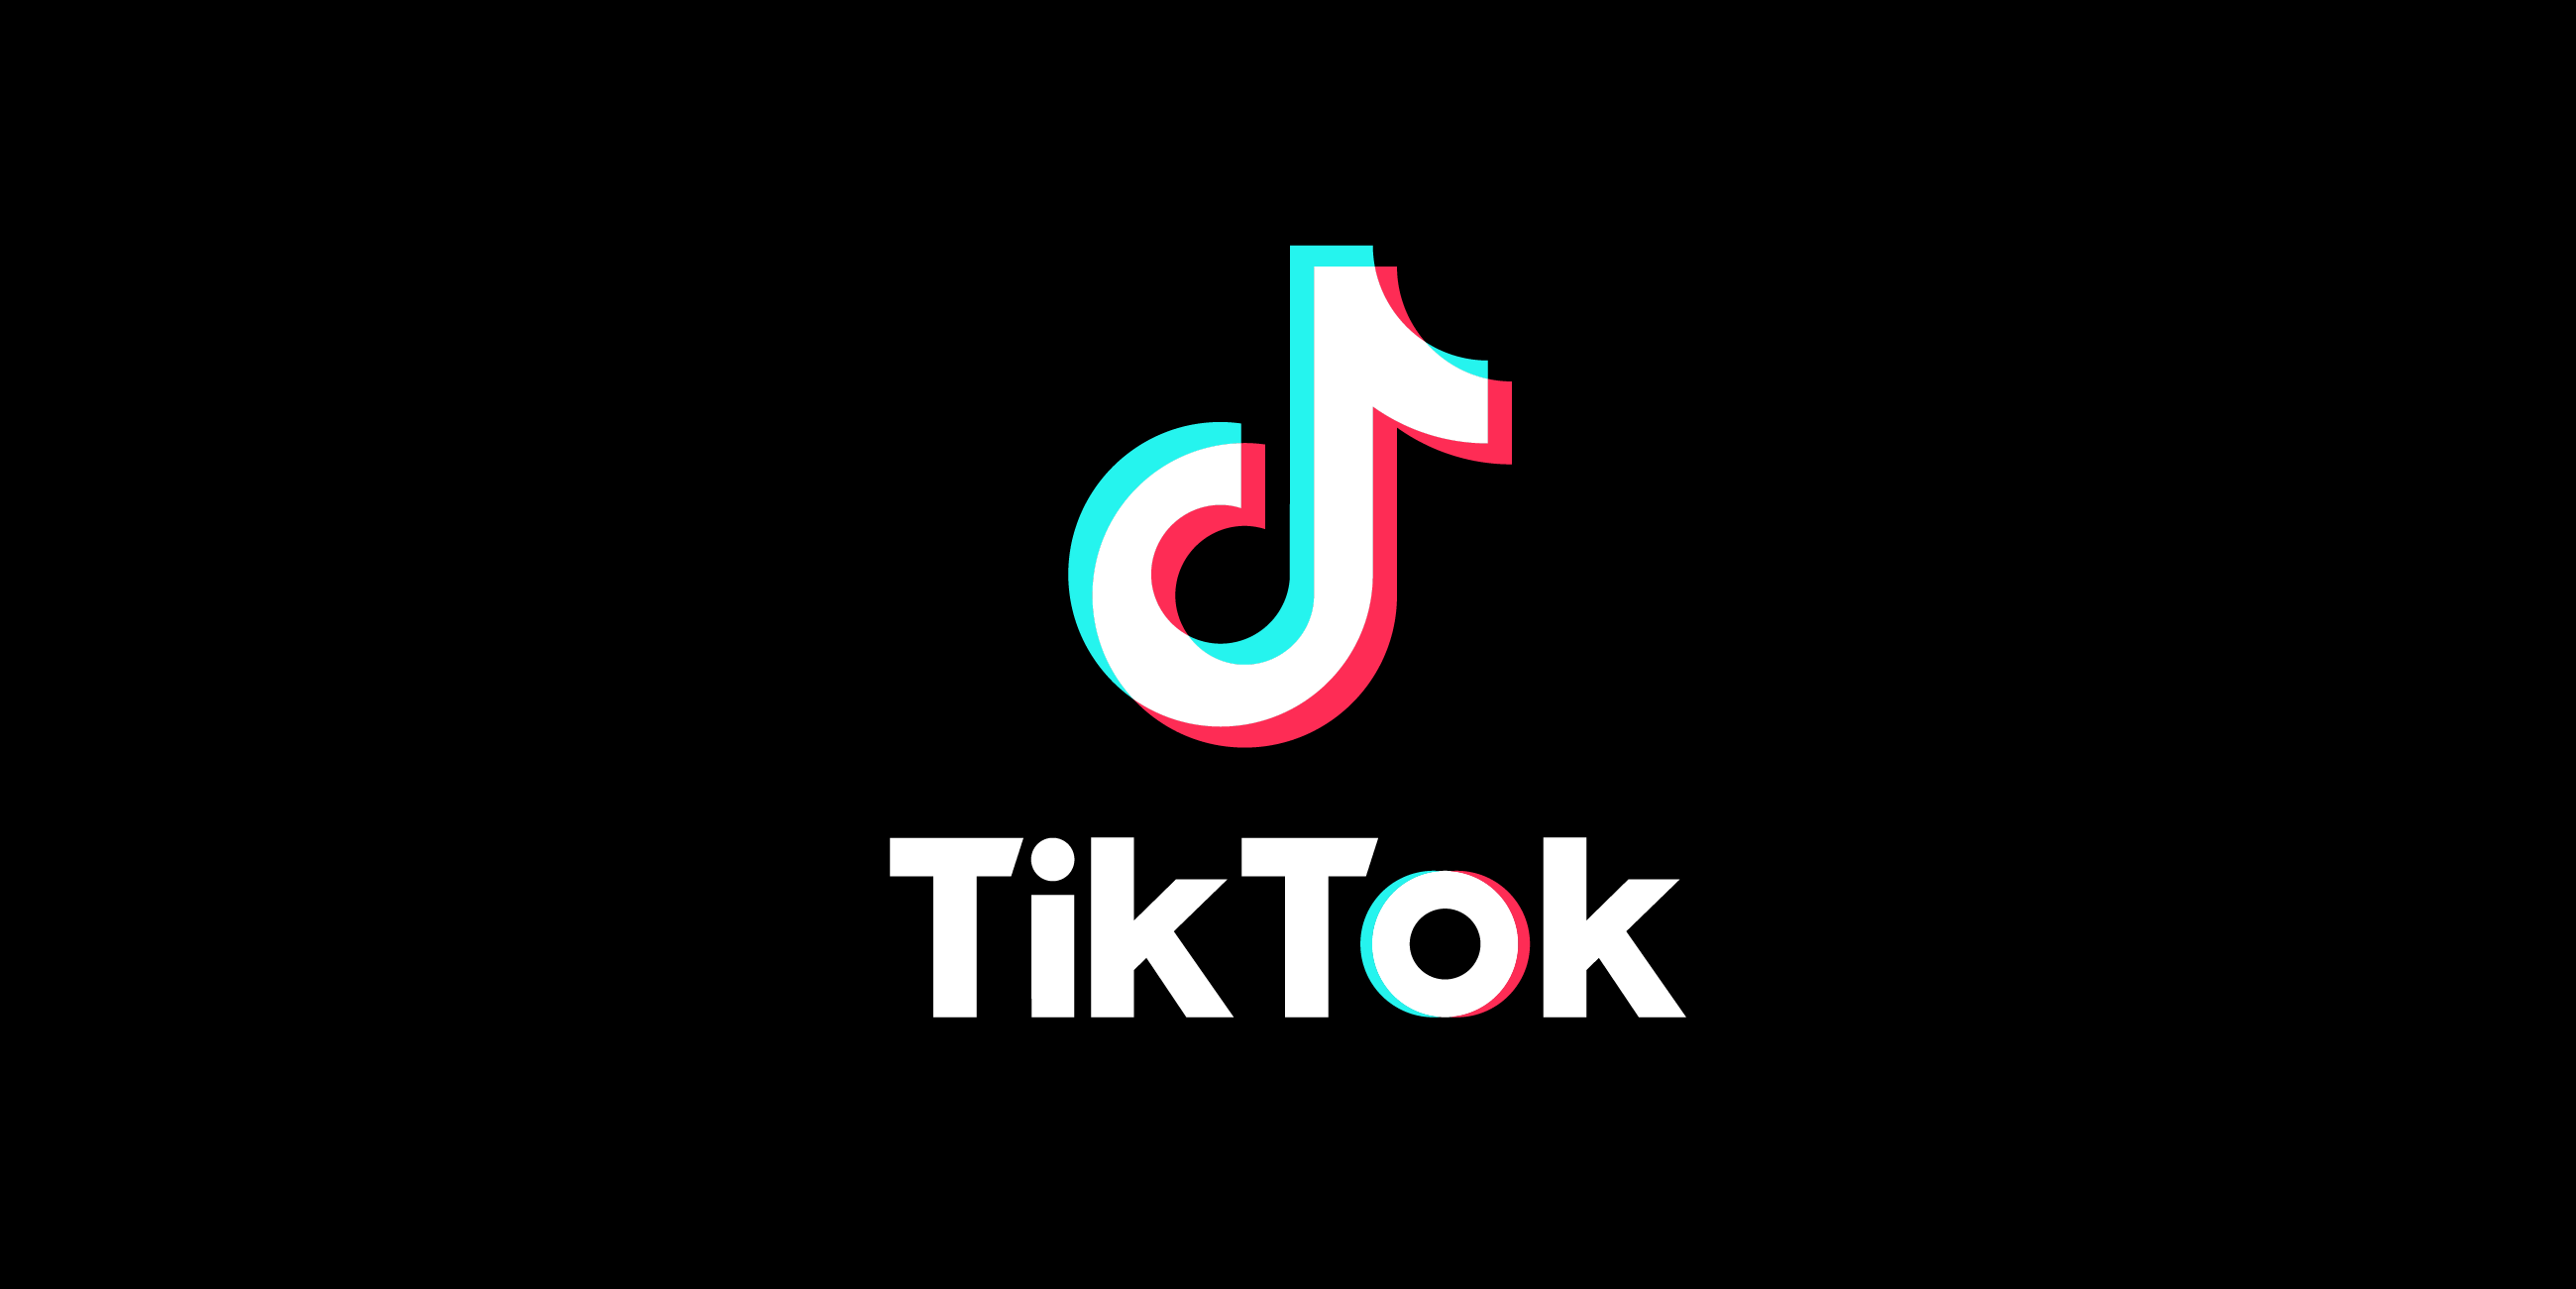 The Oracle-Walmart-TikTok deal includes plans for the formation of a new TikTok Global.